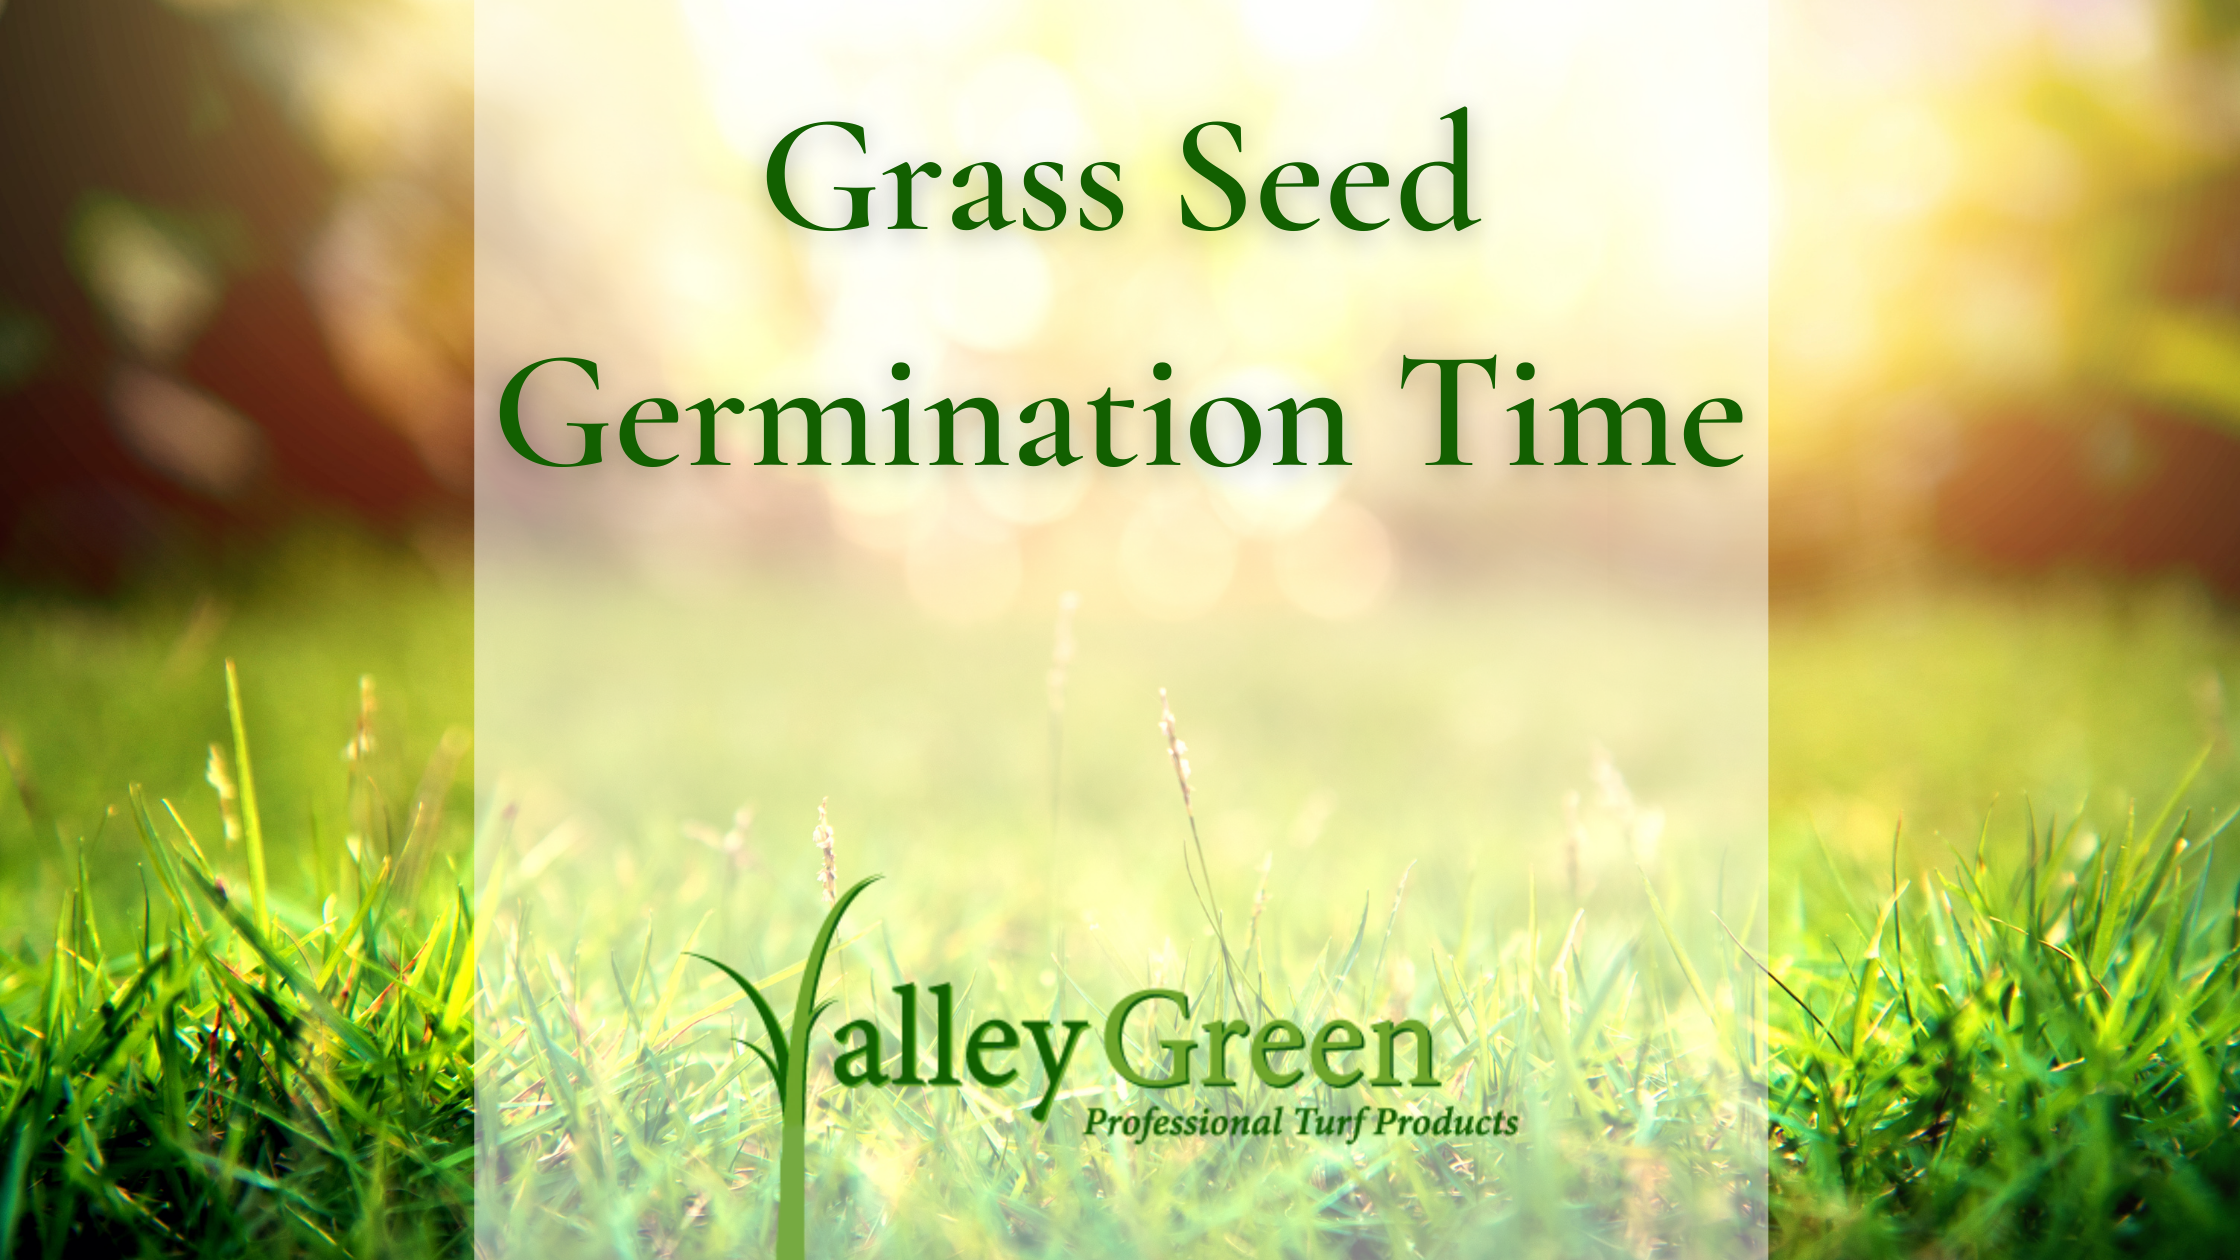 Grass Seed Germination Time